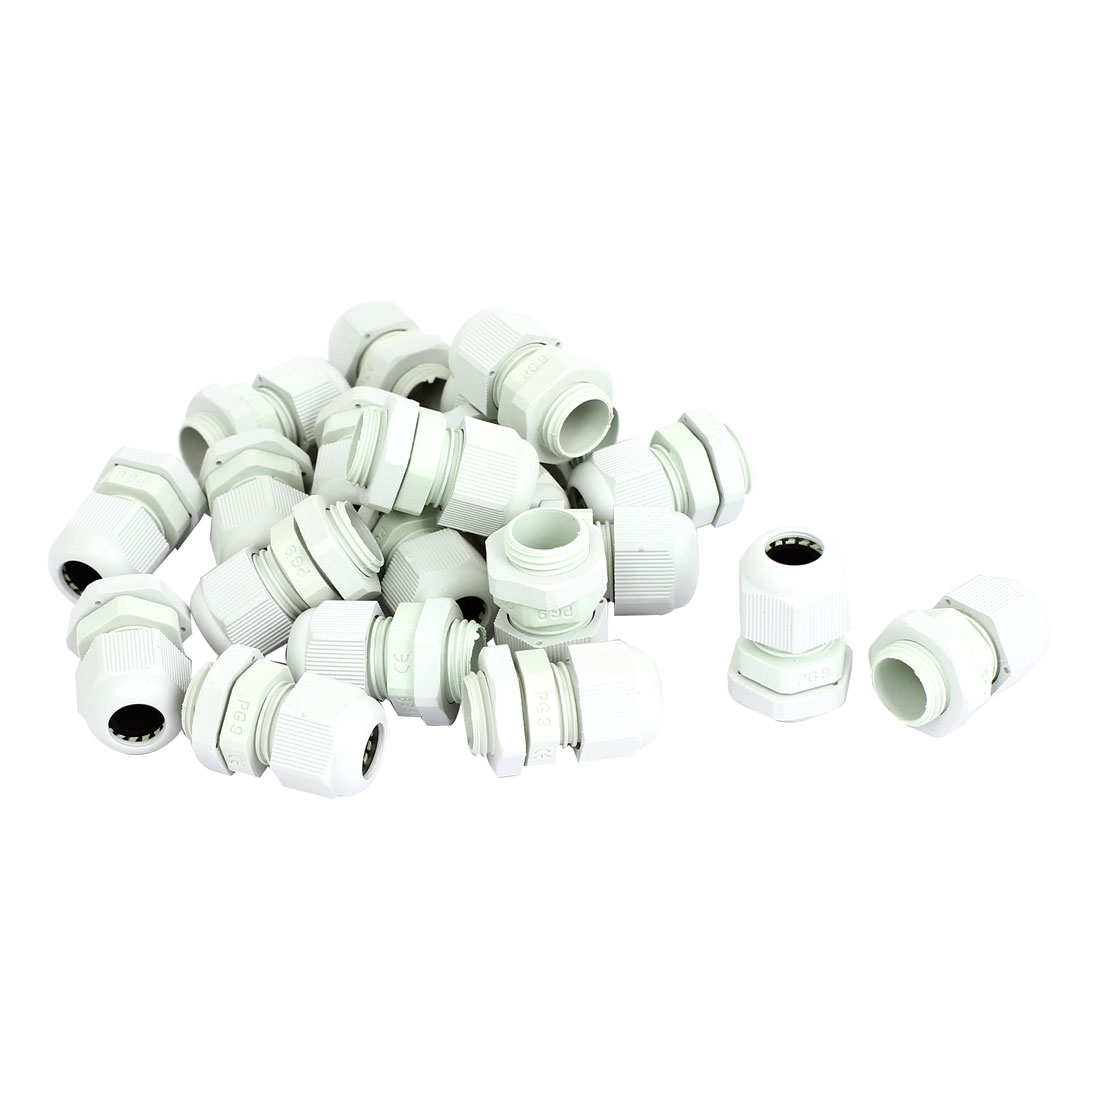 20 Pcs White Plastic PG9 3.5-8mm 16mm Male Thread Dia Waterproof Cable Glands Adapter Fastener